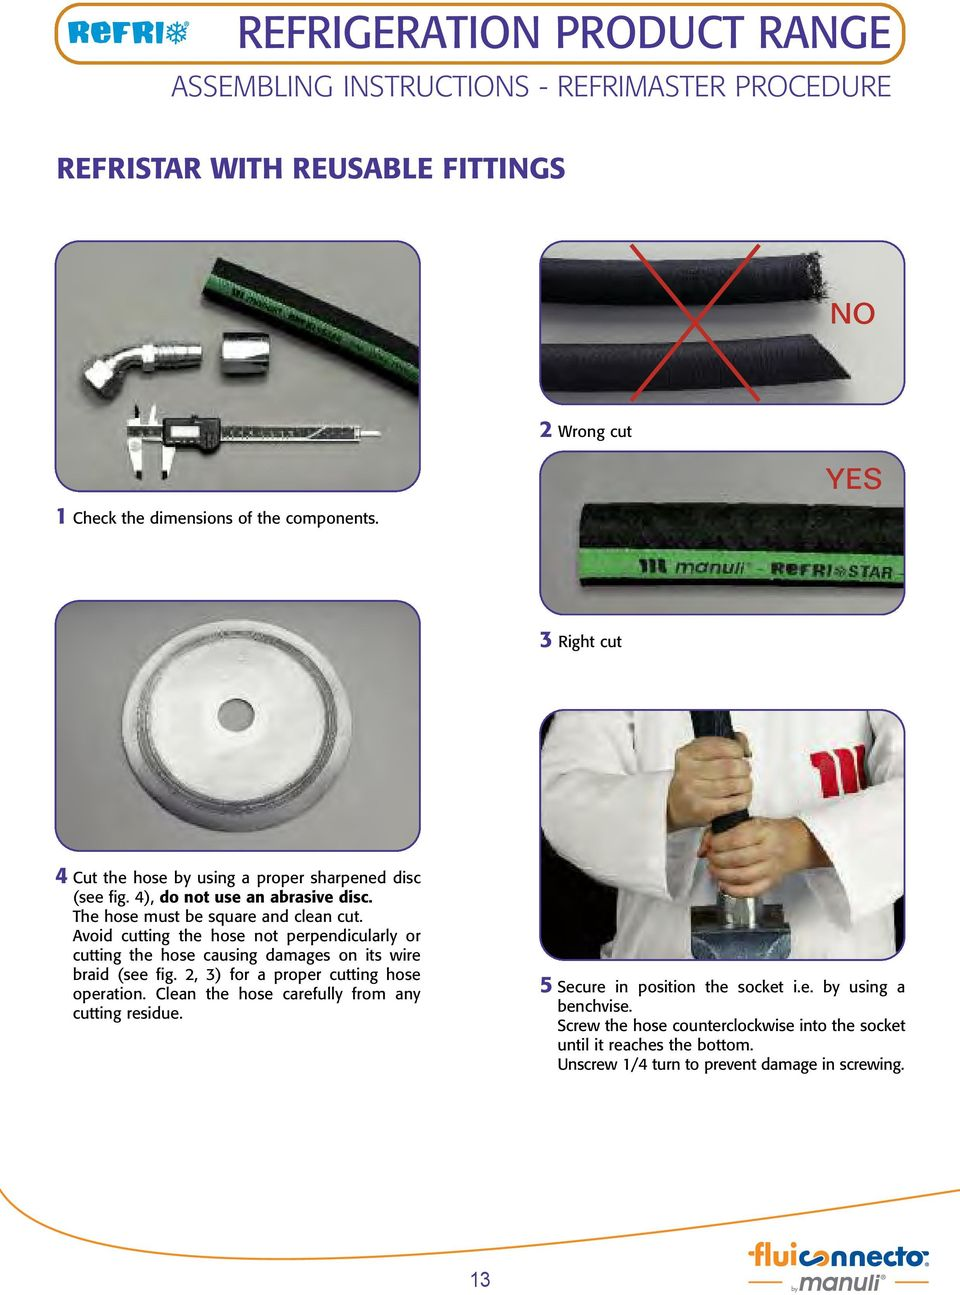 Avoid cutting the hose not perpendicularly or cutting the hose causing damages on its wire braid (see fig. 2, 3) for a proper cutting hose operation.